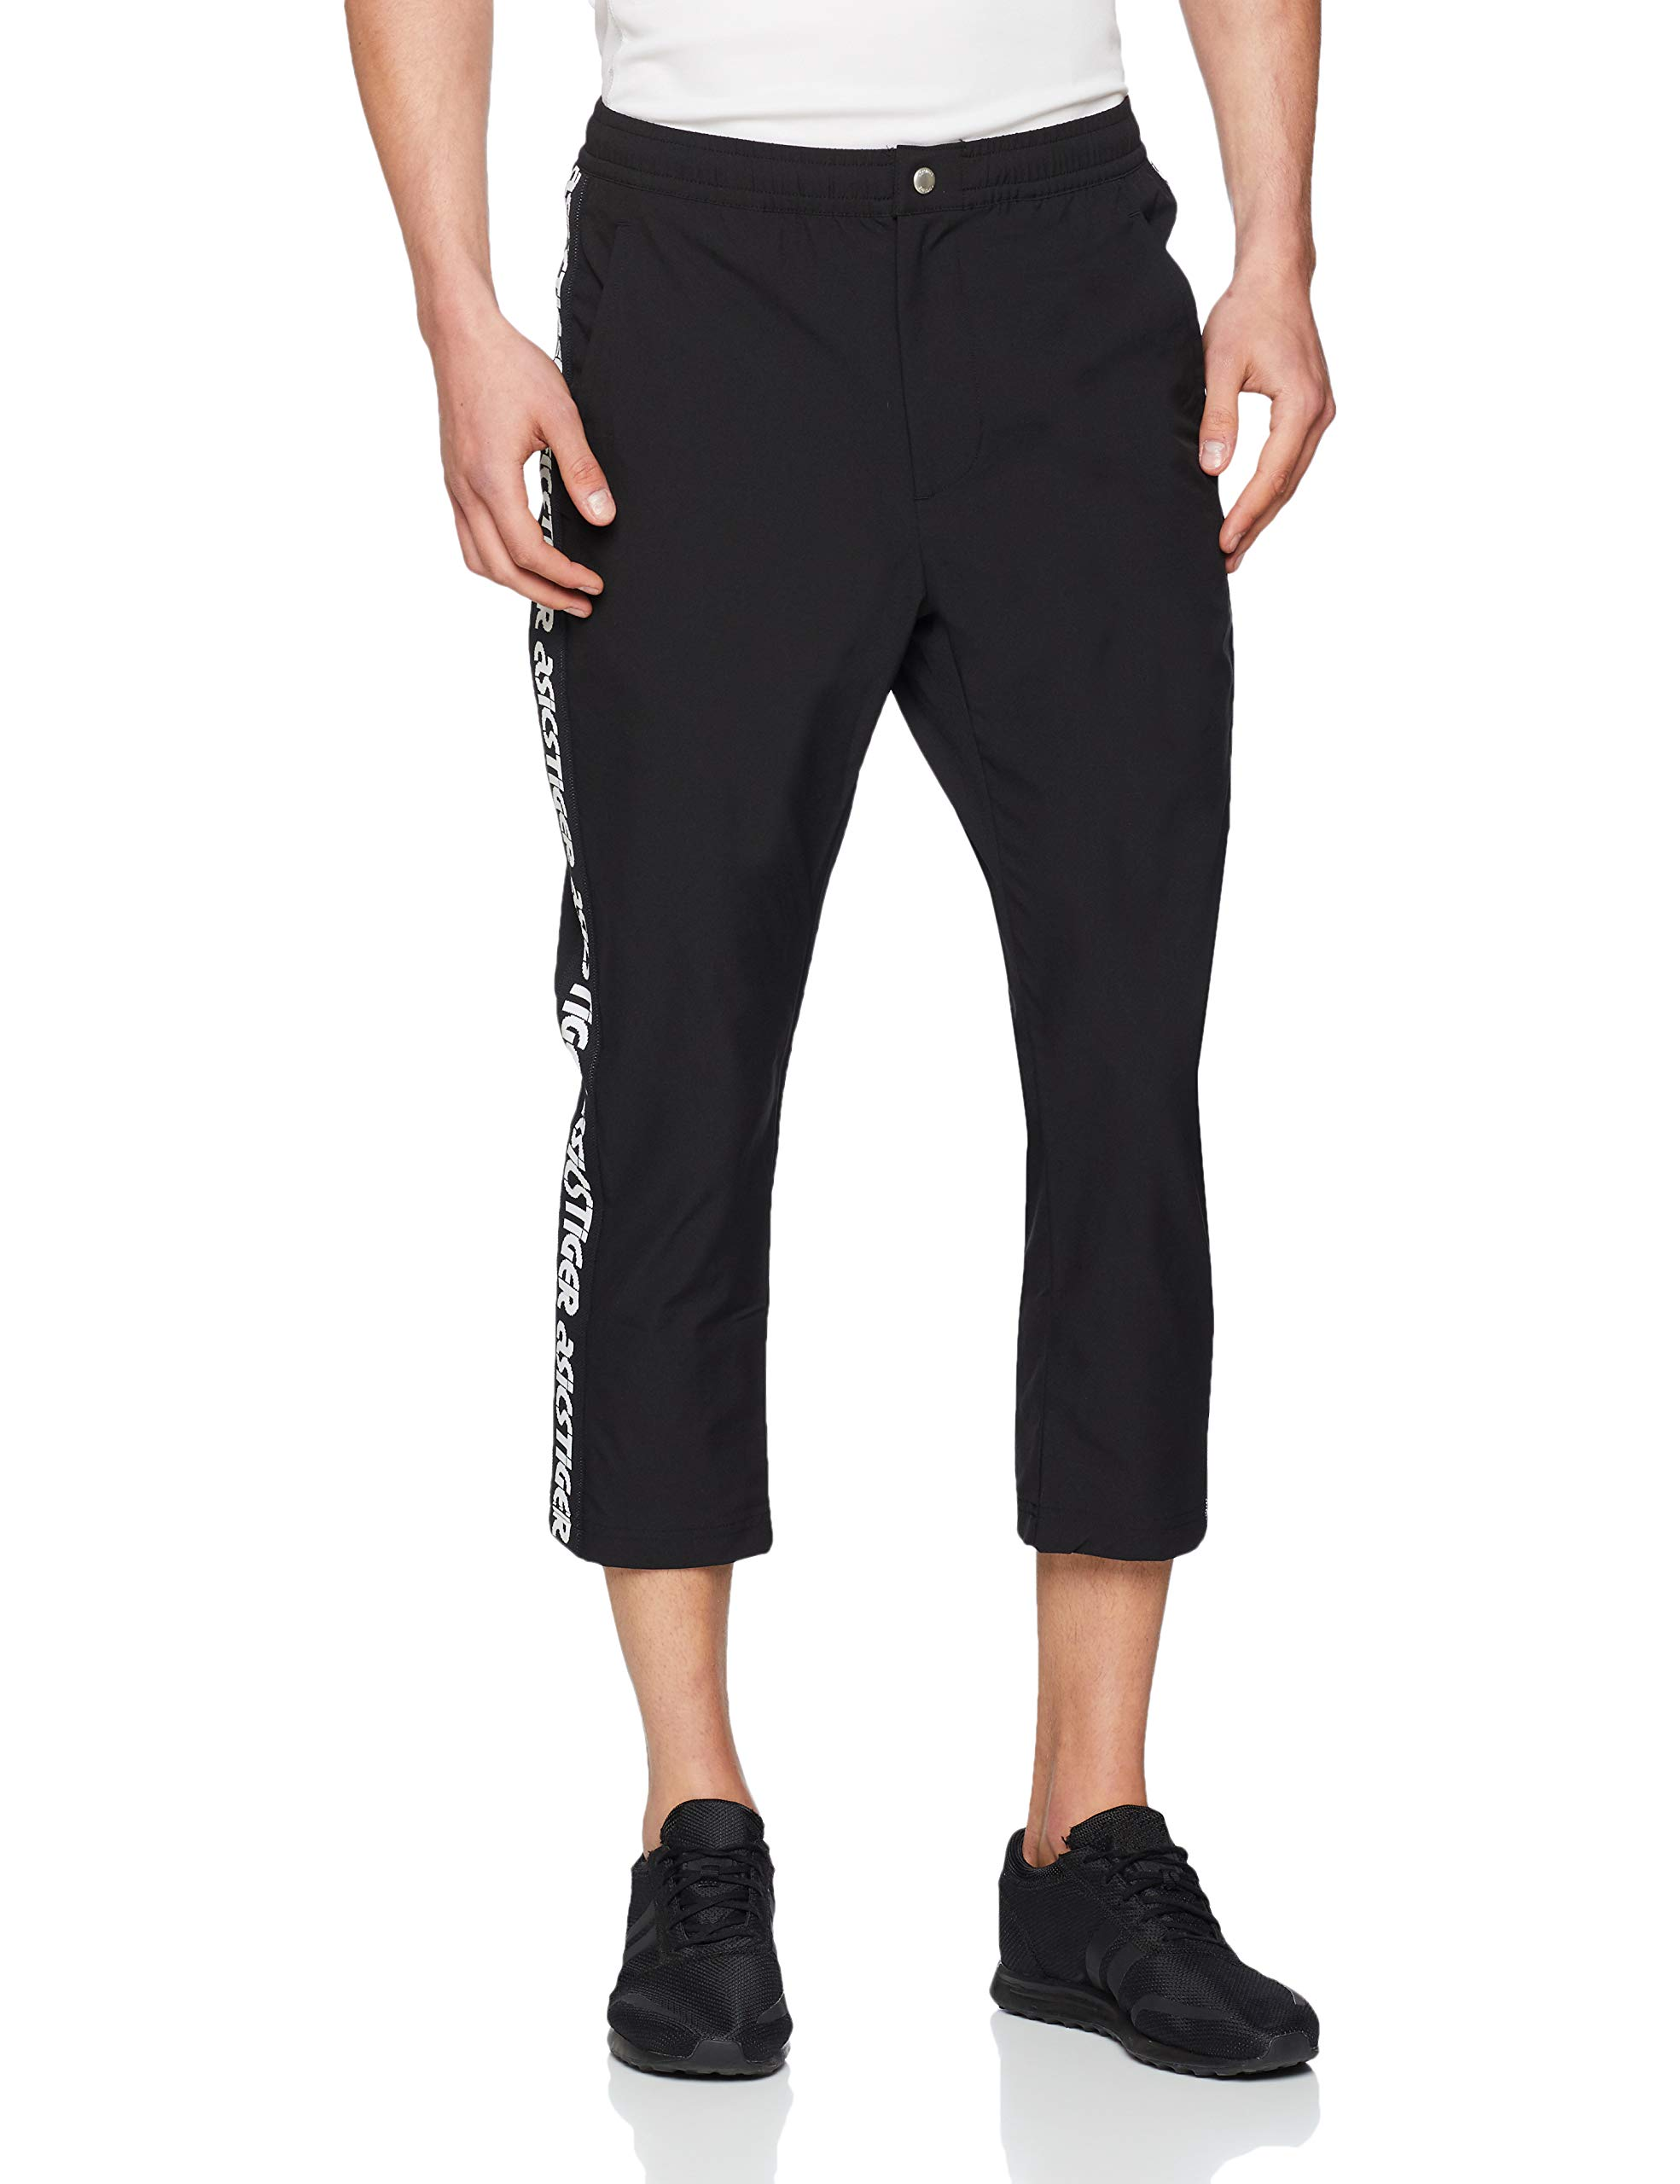 Asics De Black FabricantSmallHomme Colour SportNoirperformance Pantalon Stretch Woven Blocking Pants Light 00132taille UzMVqSp